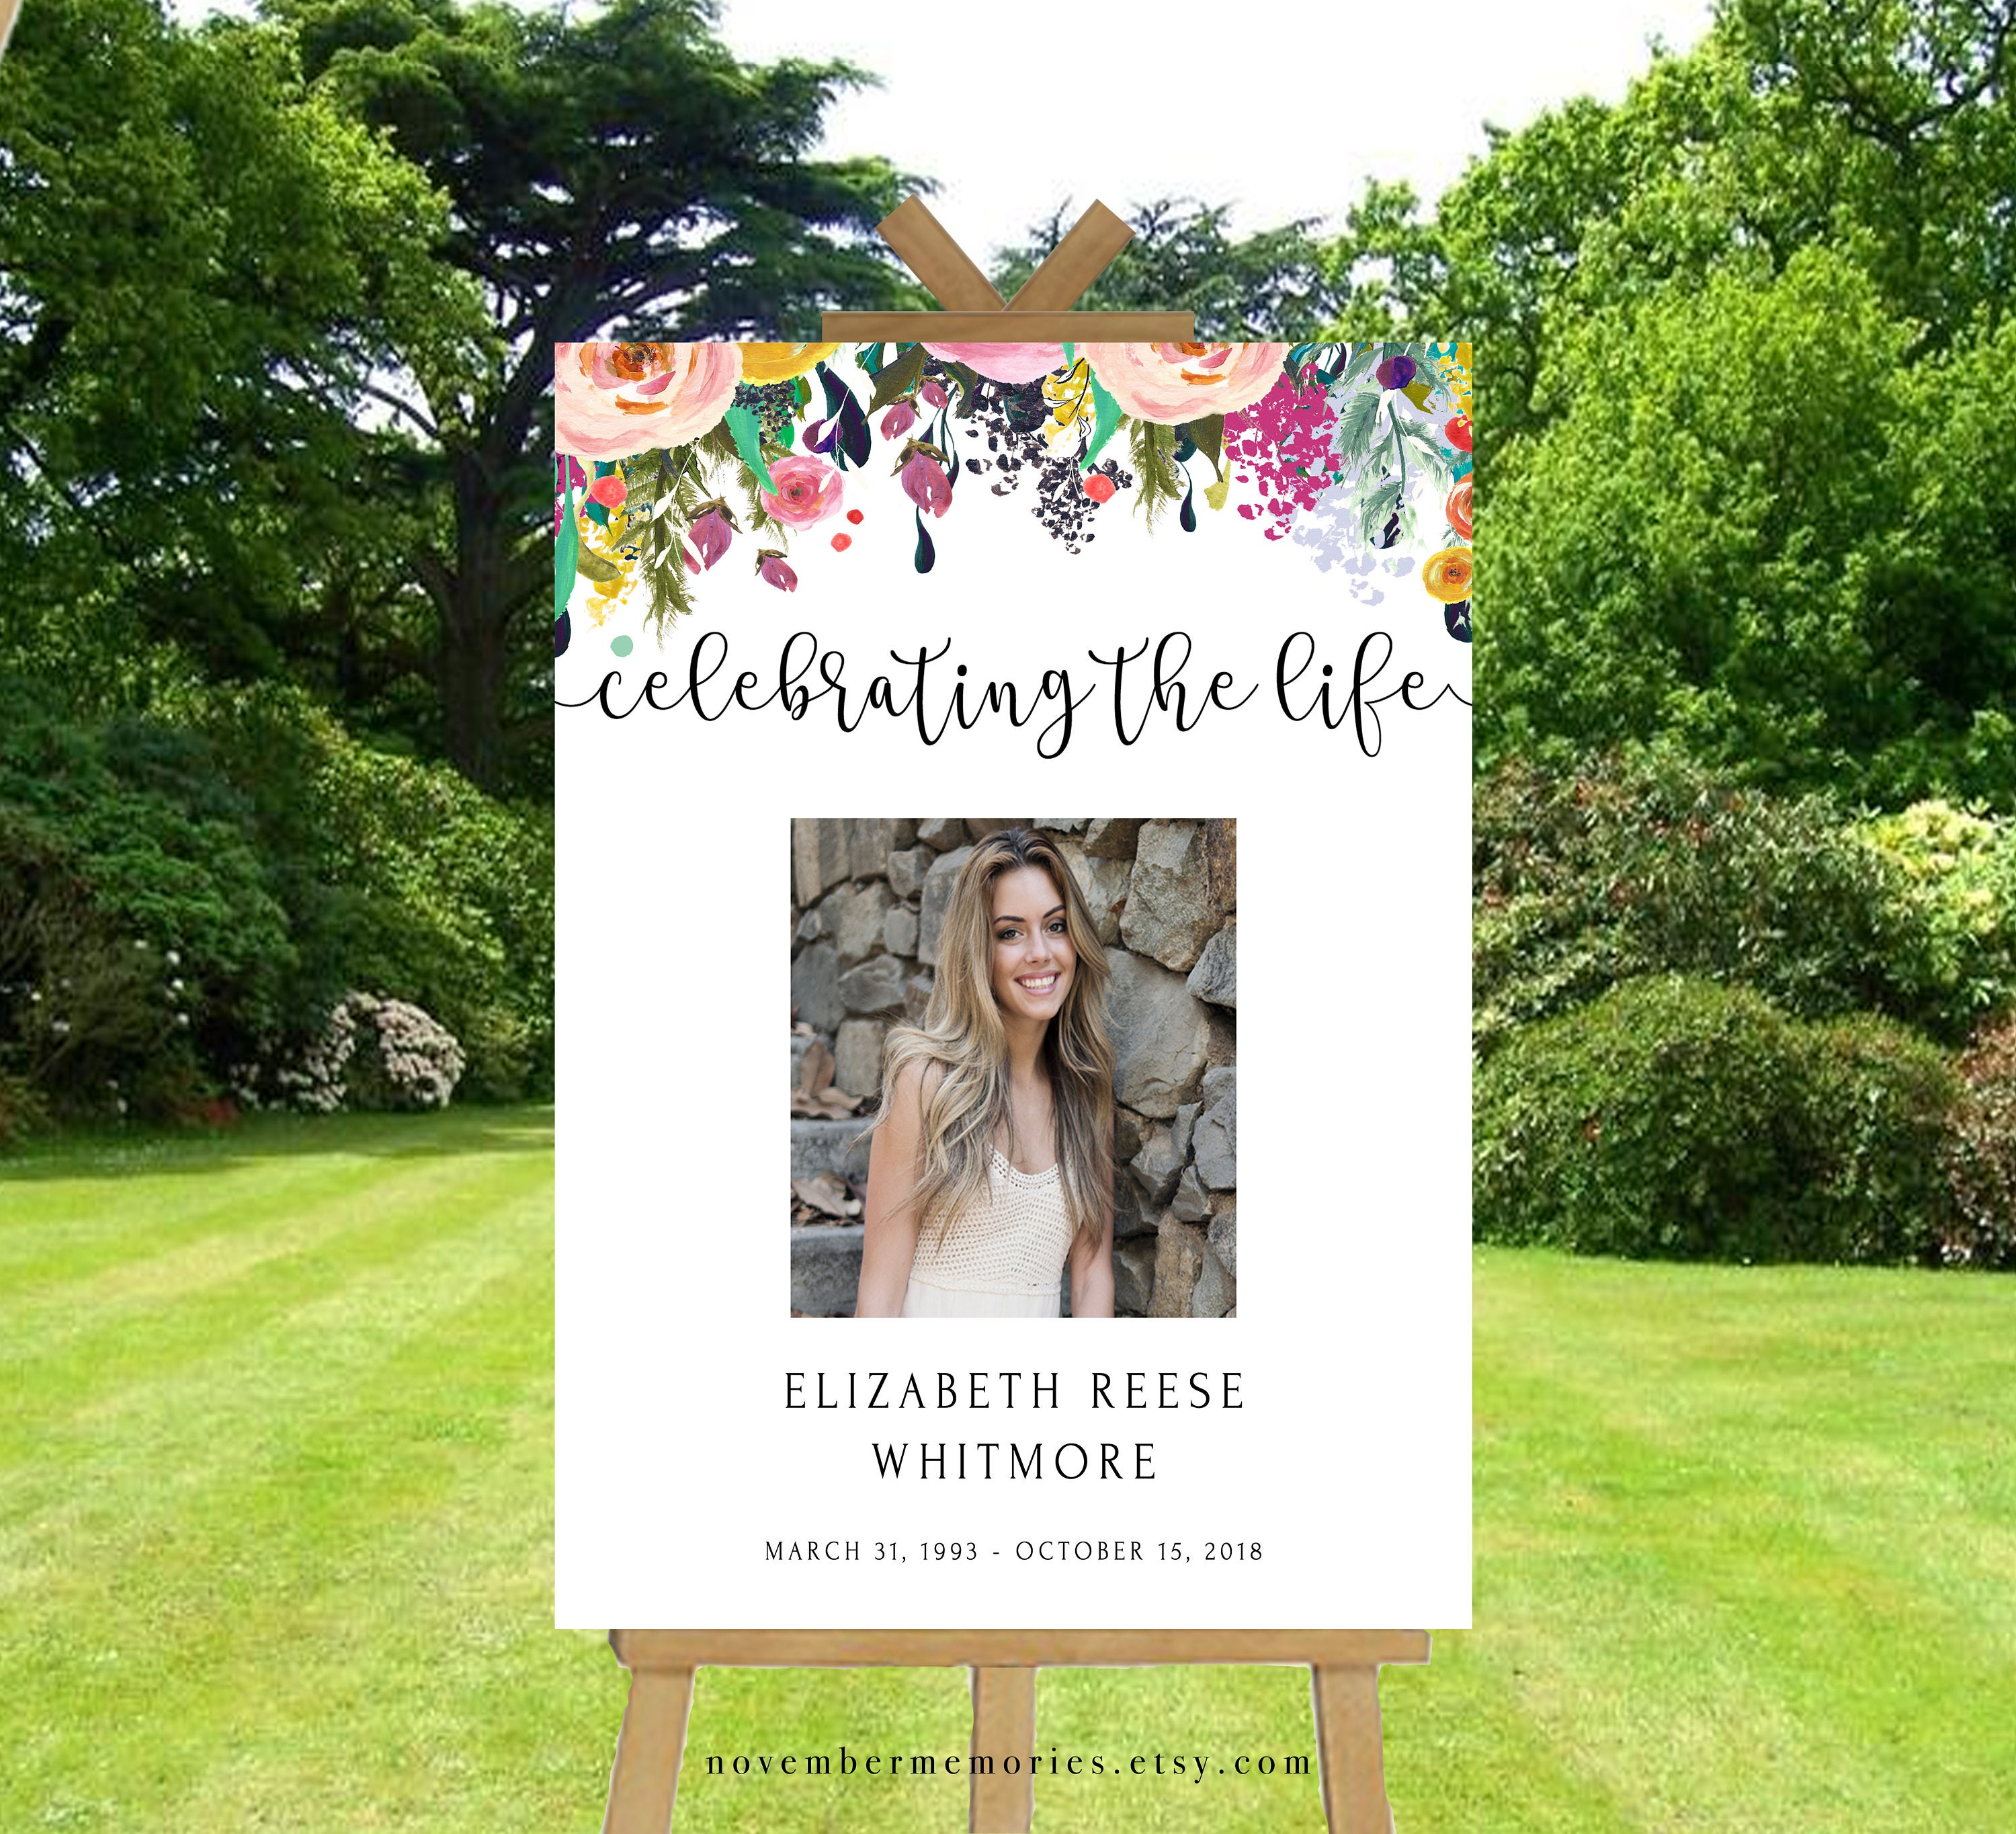 Celebration of life decorations template banner funeral decor etsy celebration of life decorations template banner funeral decor life celebration memorial service ideas with photo photo sign floral colorful izmirmasajfo